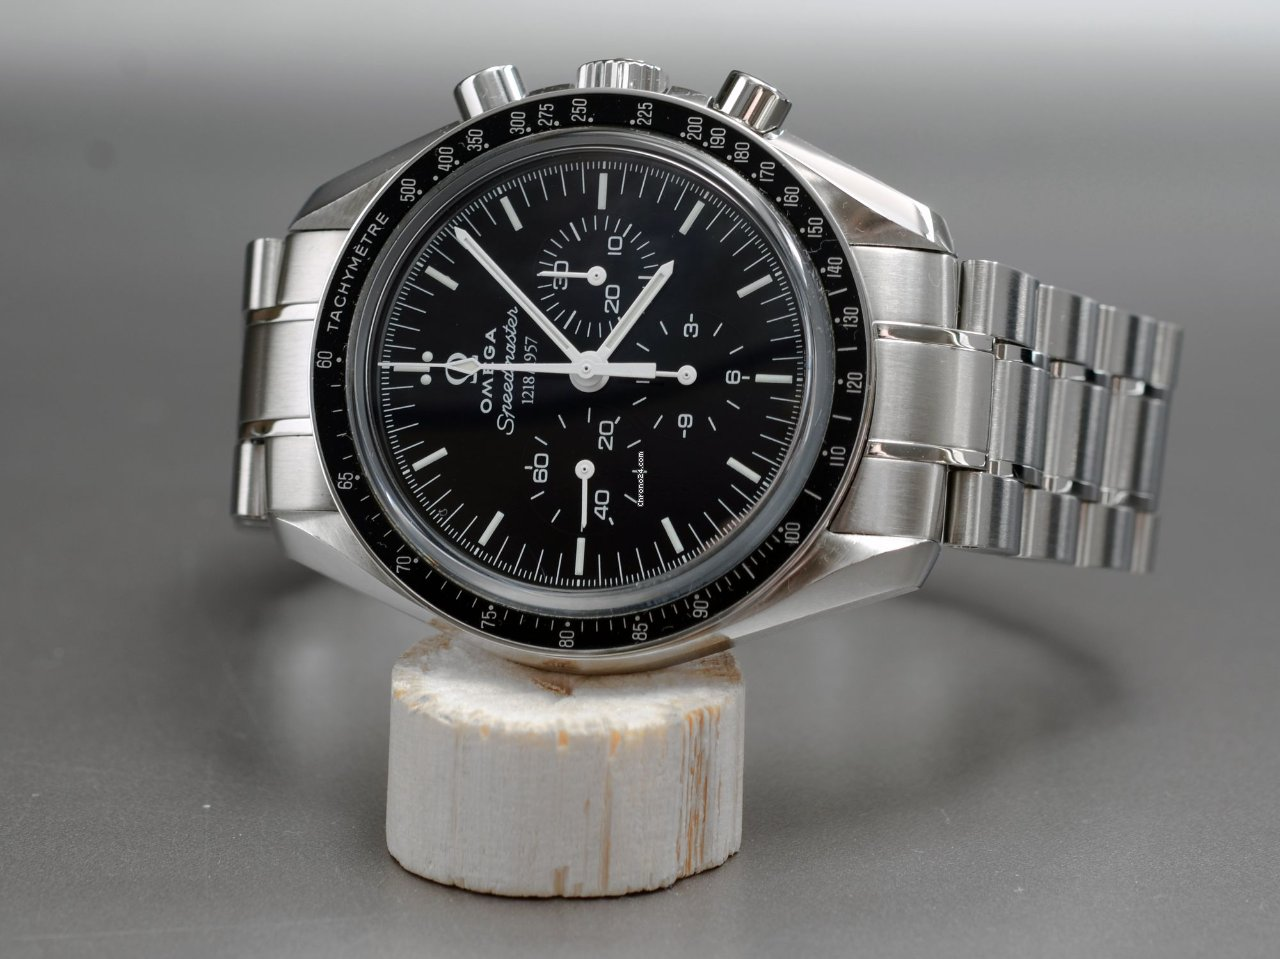 Omega Speedmaster 1957 Limited Edition 50th Anniversary (Full... for $7,742  for sale from a Trusted Seller on Chrono24